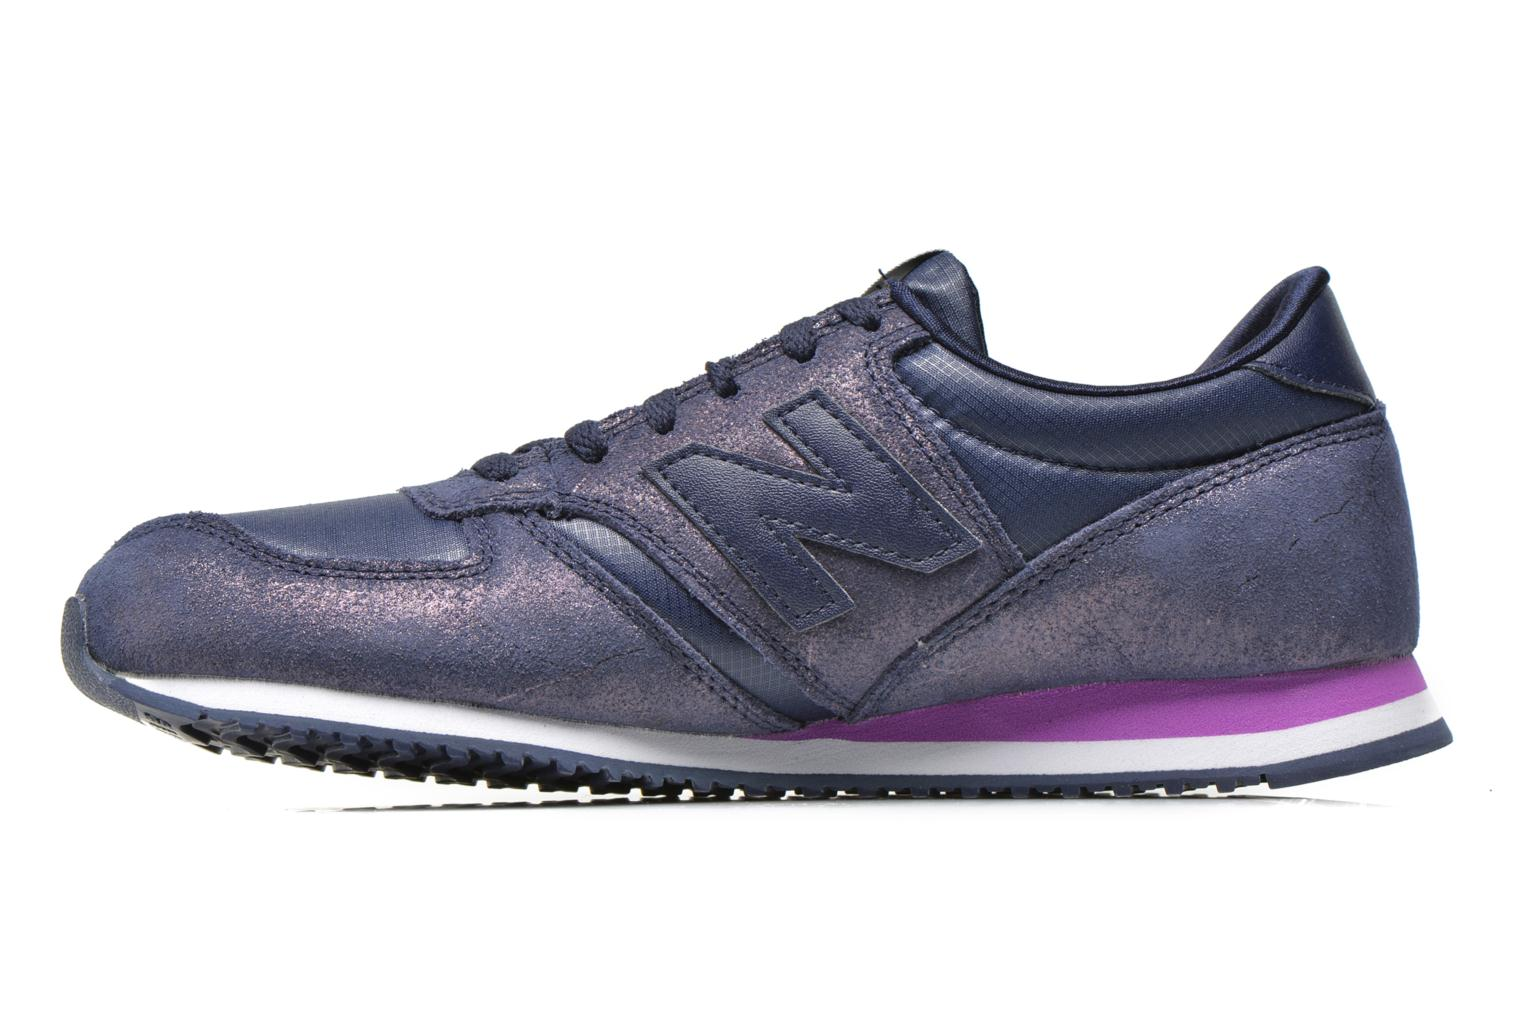 WL420 npb dark purple